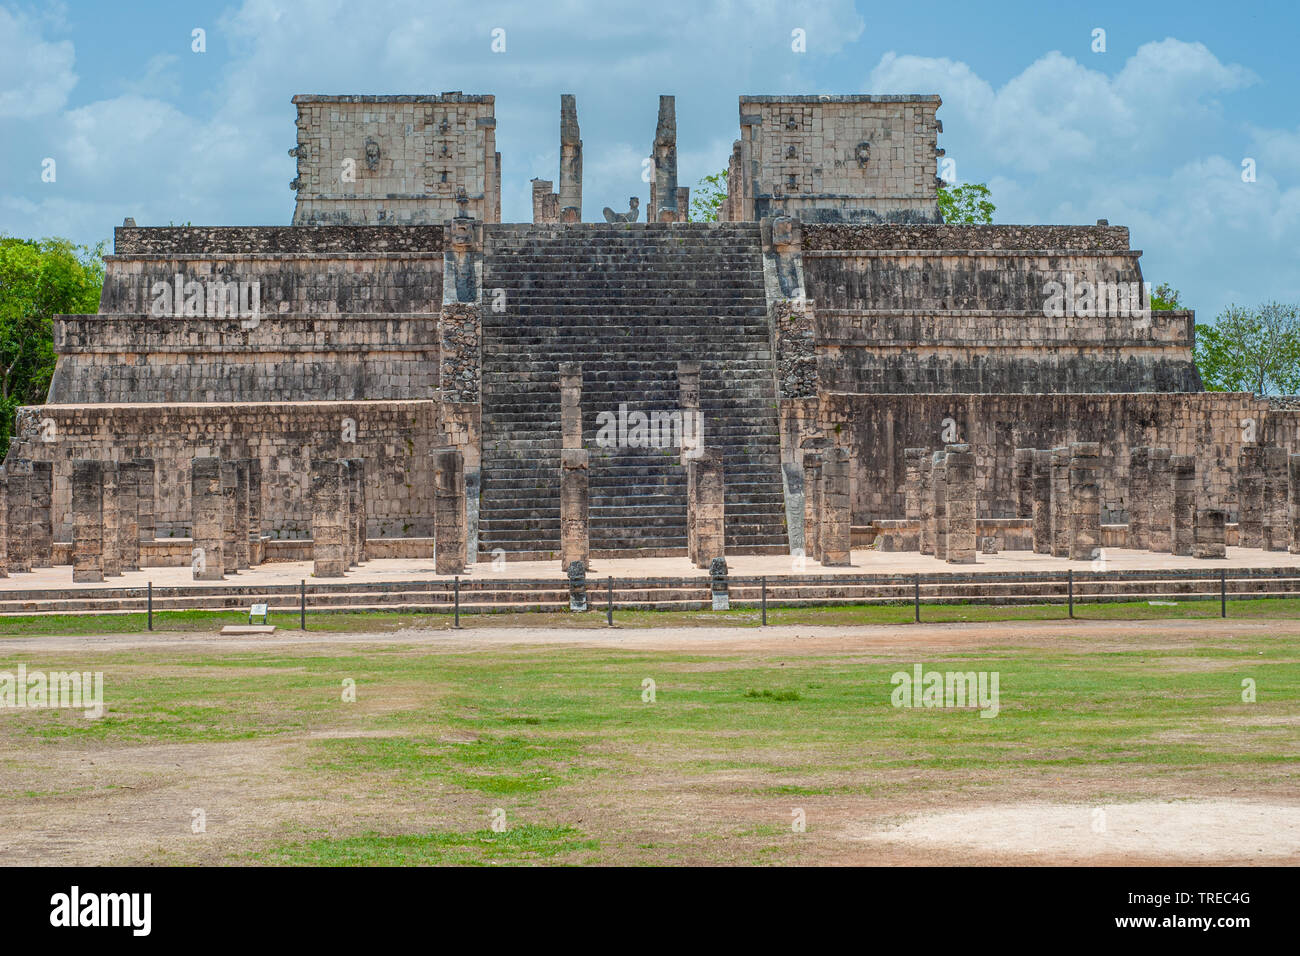 Ruins of an ancient Mayan temple, taken in the archaeological area of Chichen Itza, on the Yucatan peninsula - Stock Image